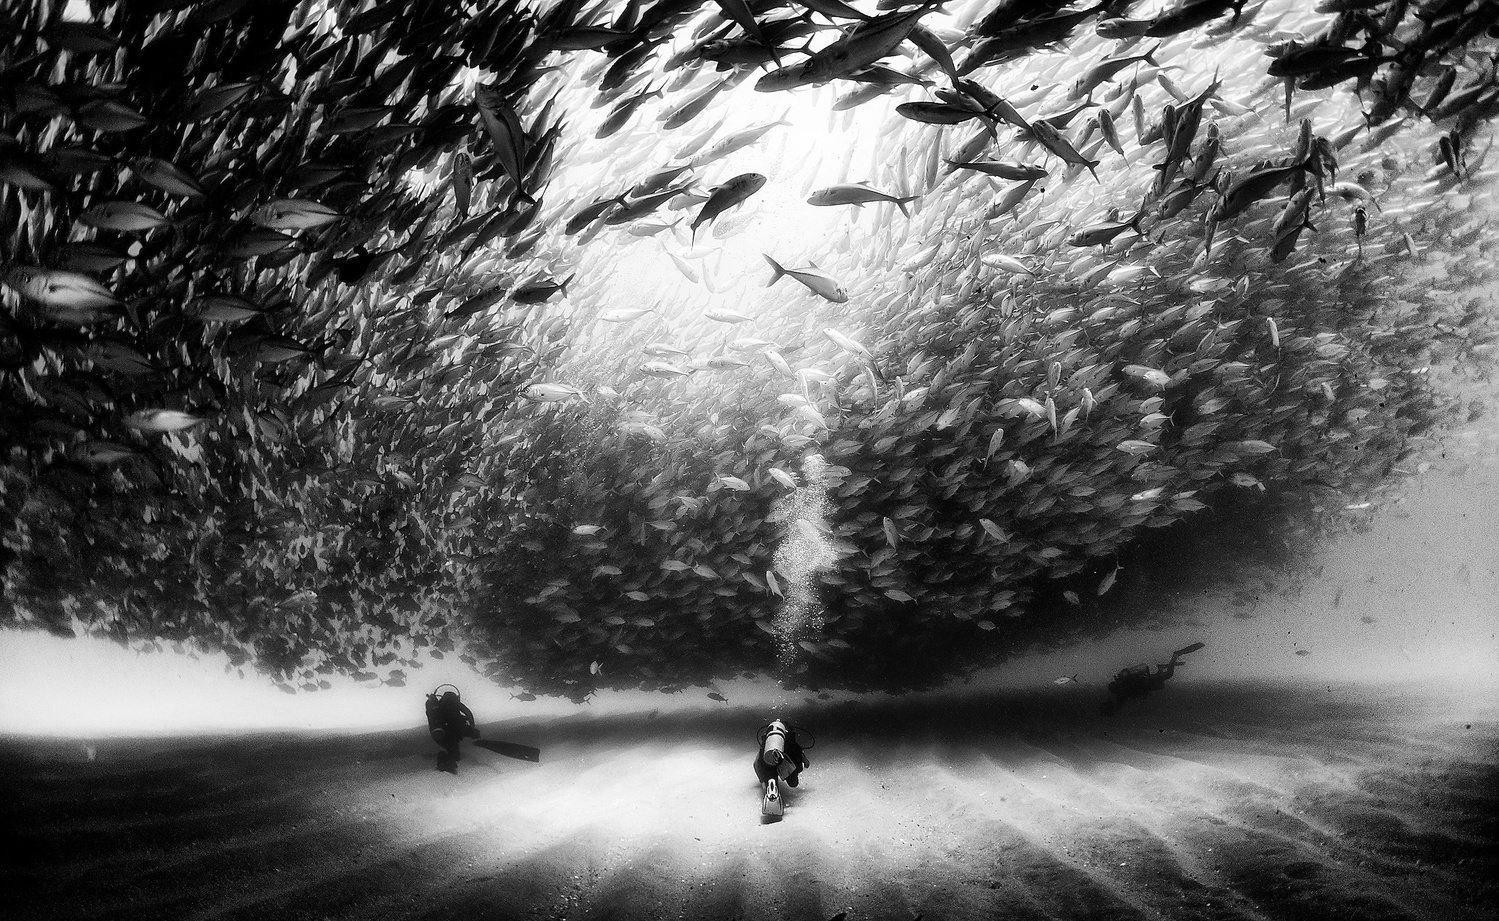 The Captivating Black and White Underwater Photography of Anuar Patjane Floriuk  Fstoppers